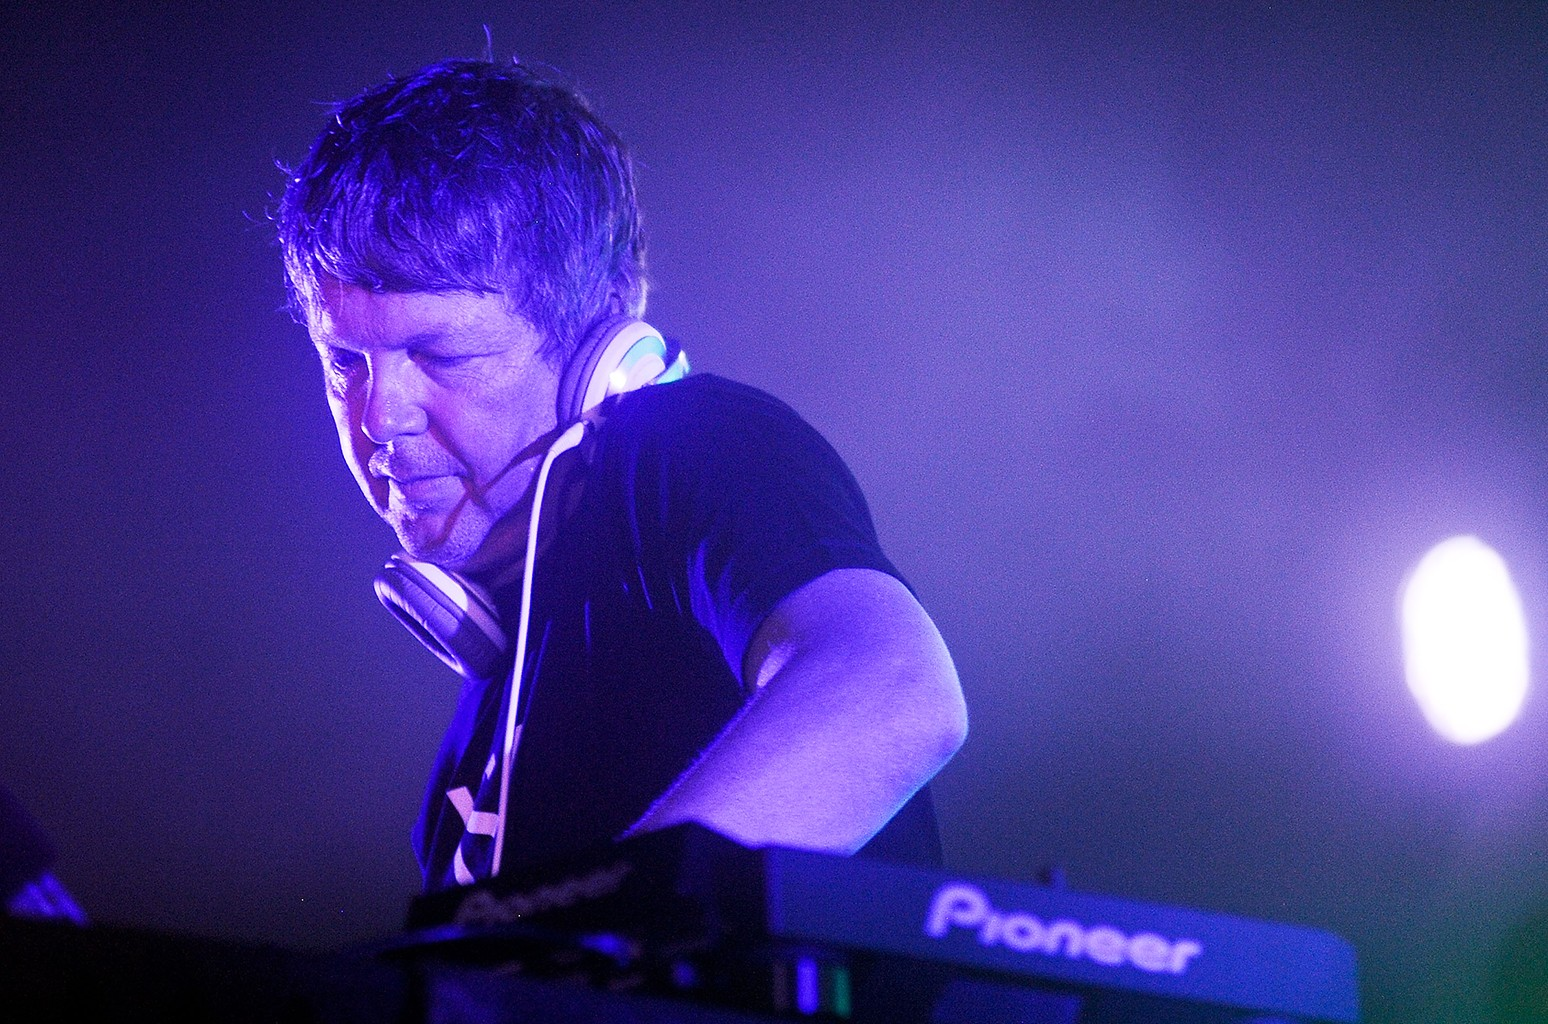 John Digweed performs on Aug. 31, 2013 in New York City.